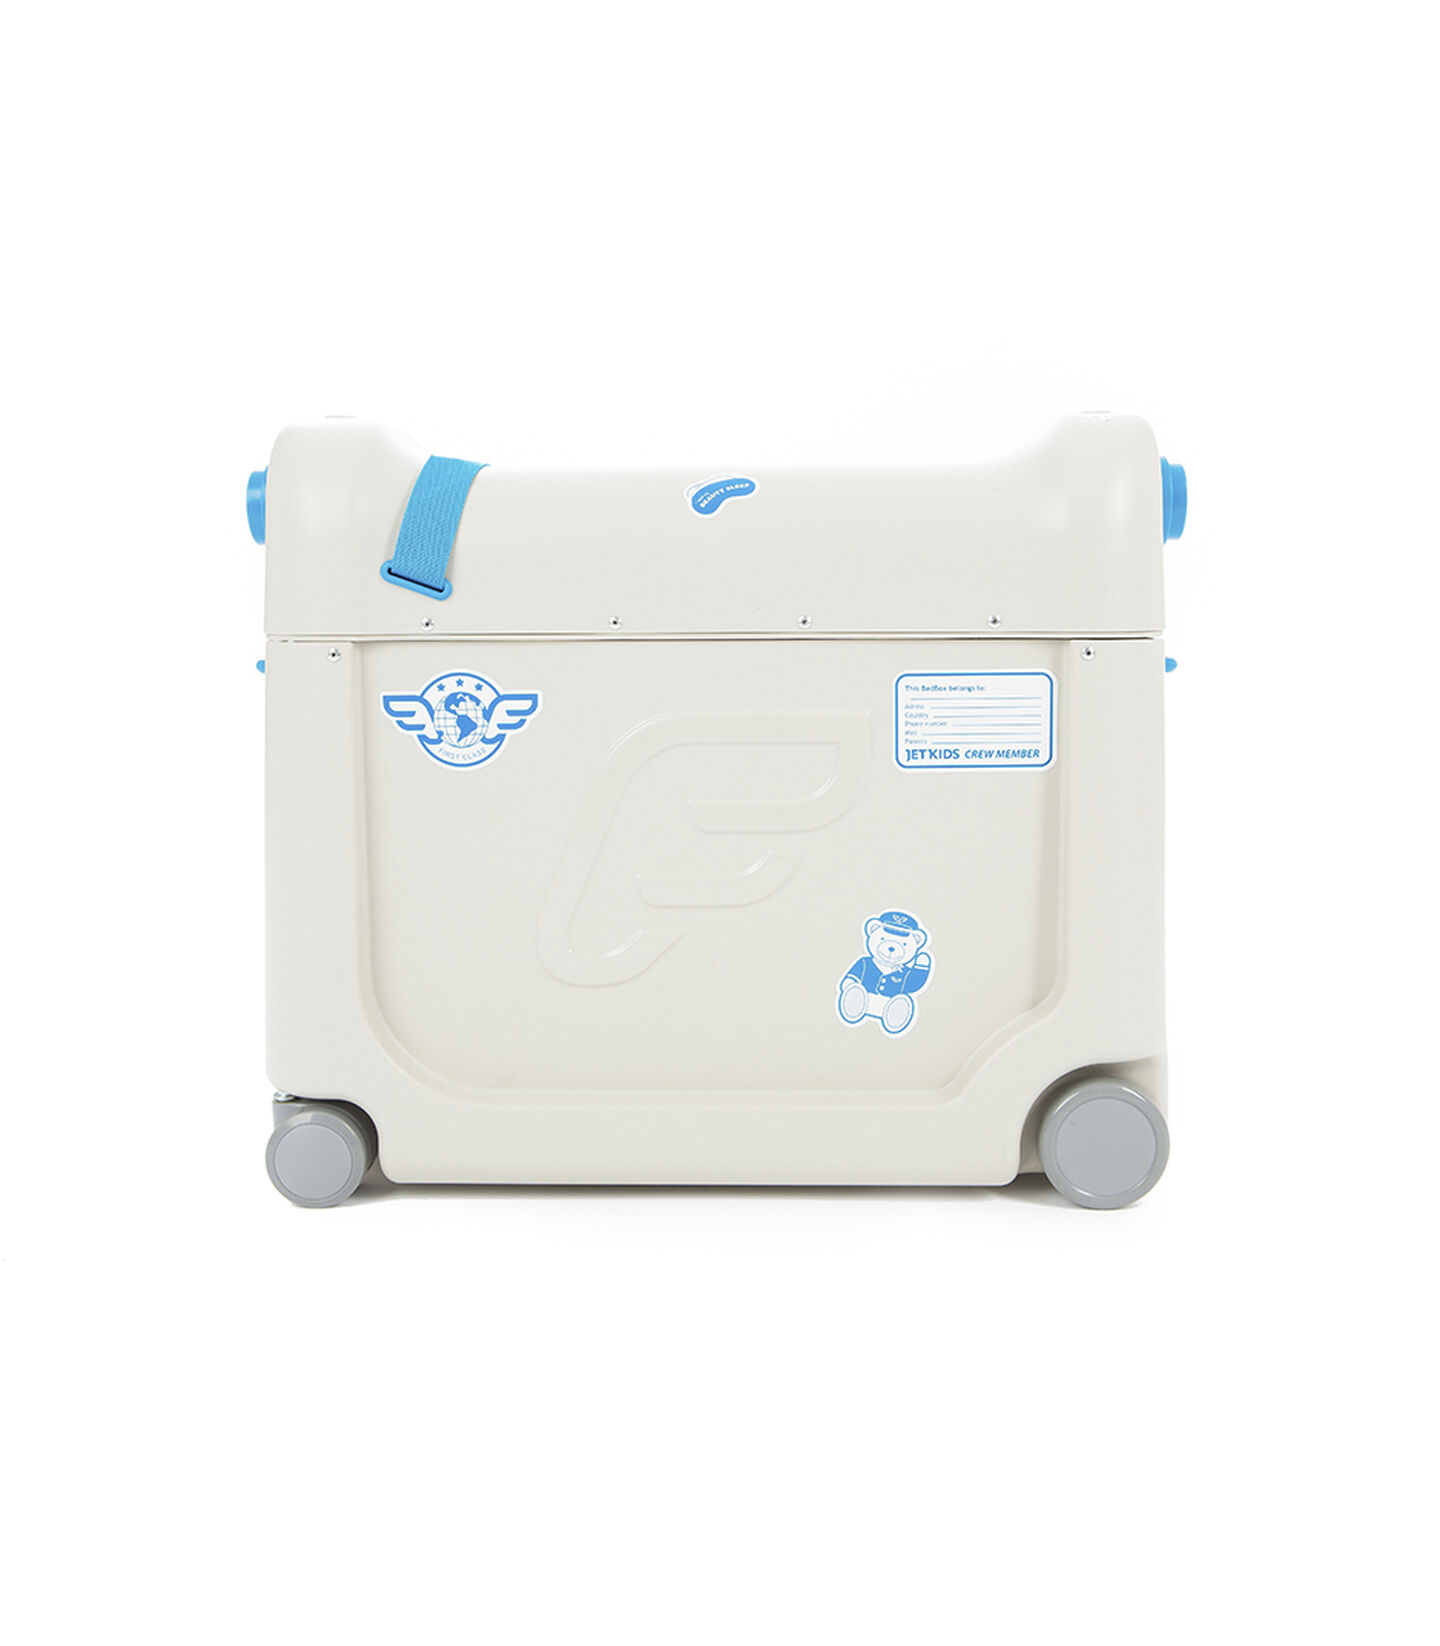 Jetkids by Stokke Bedbox Product Blue